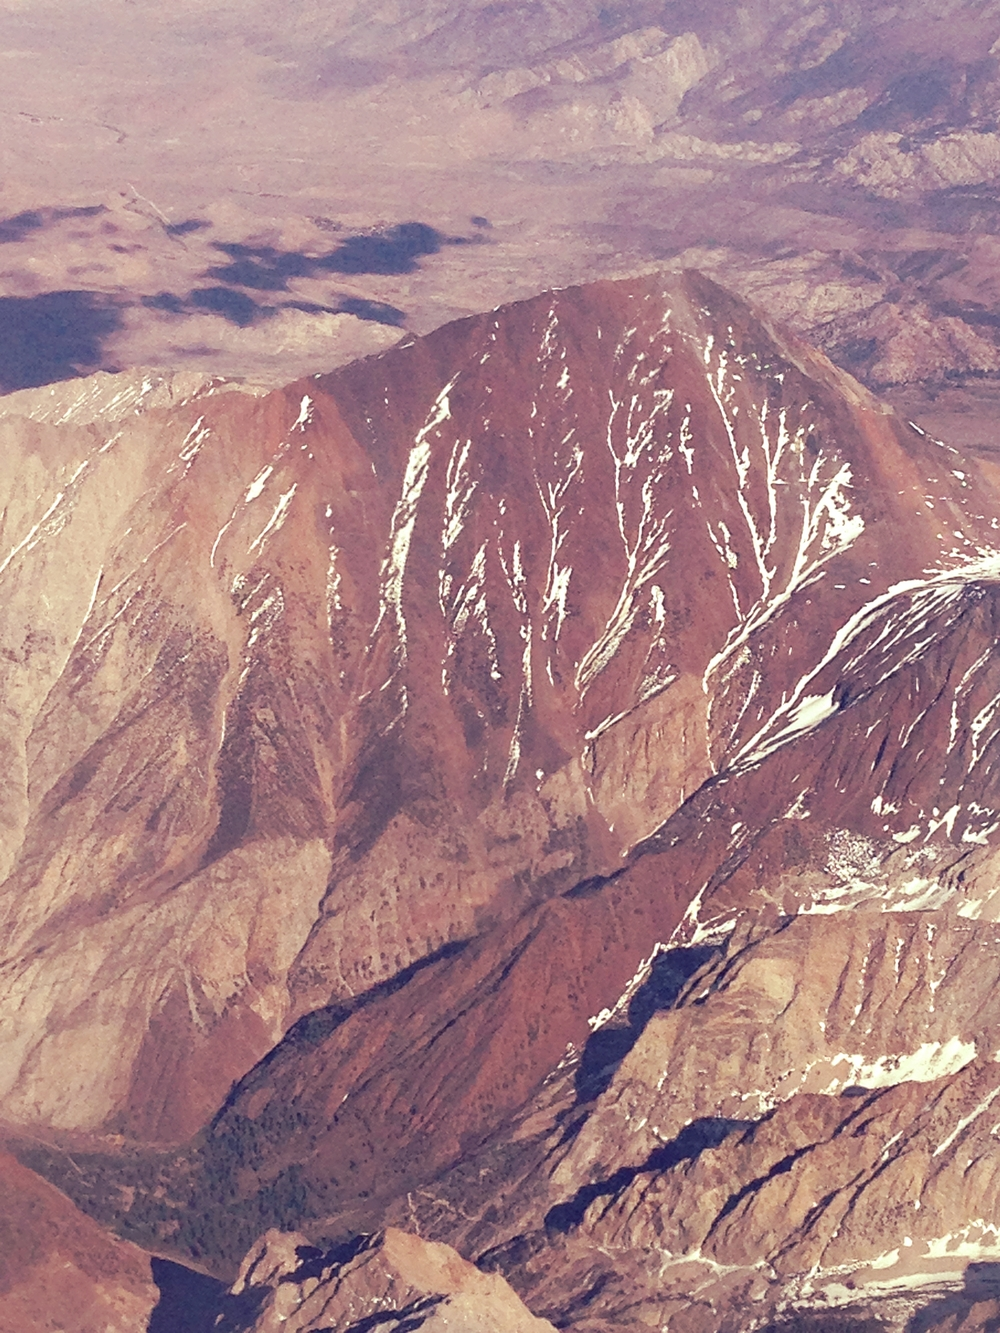 Have you ever wondered what the backside of Mount Tom looked like? Photo by author. Plane, Embraer by United, LAX to Mammoth-Yosemite.